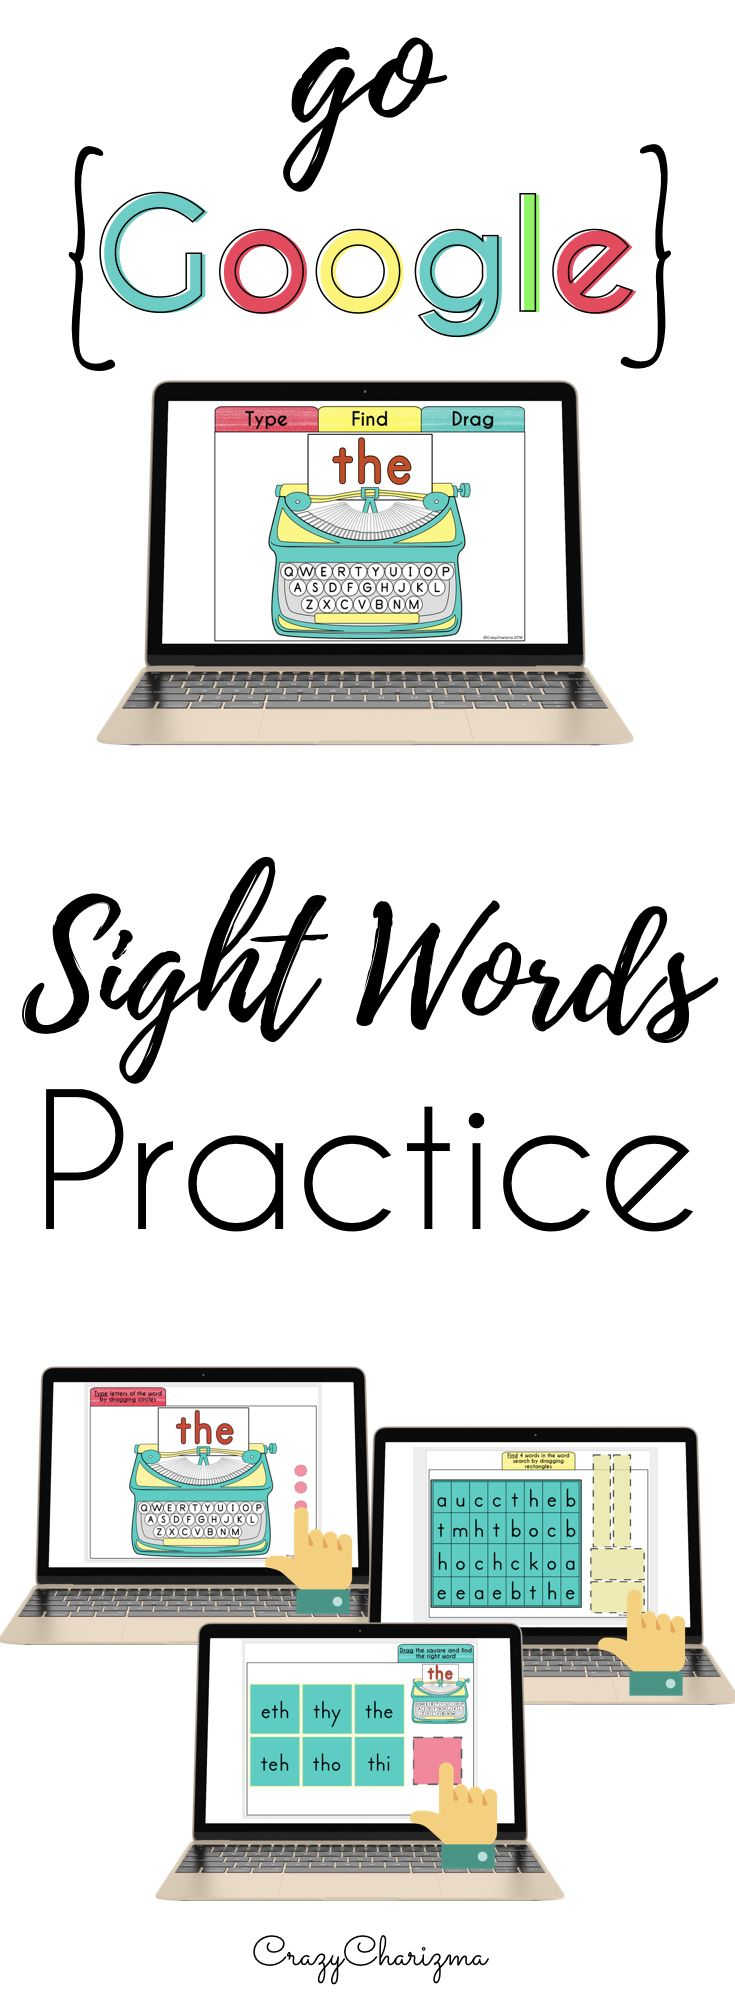 Sight words activities for Preschool, Kindergarten, and First Grade. Have fun with Google Classroom reading strategies, simplify your teaching and enable students learning in no time. No prep and no print required! Engage your kids in kindergarten (as well as grade 1 and 2) with these digital sight words activities and practice Fry words in a fun way! | CrazyCharizma